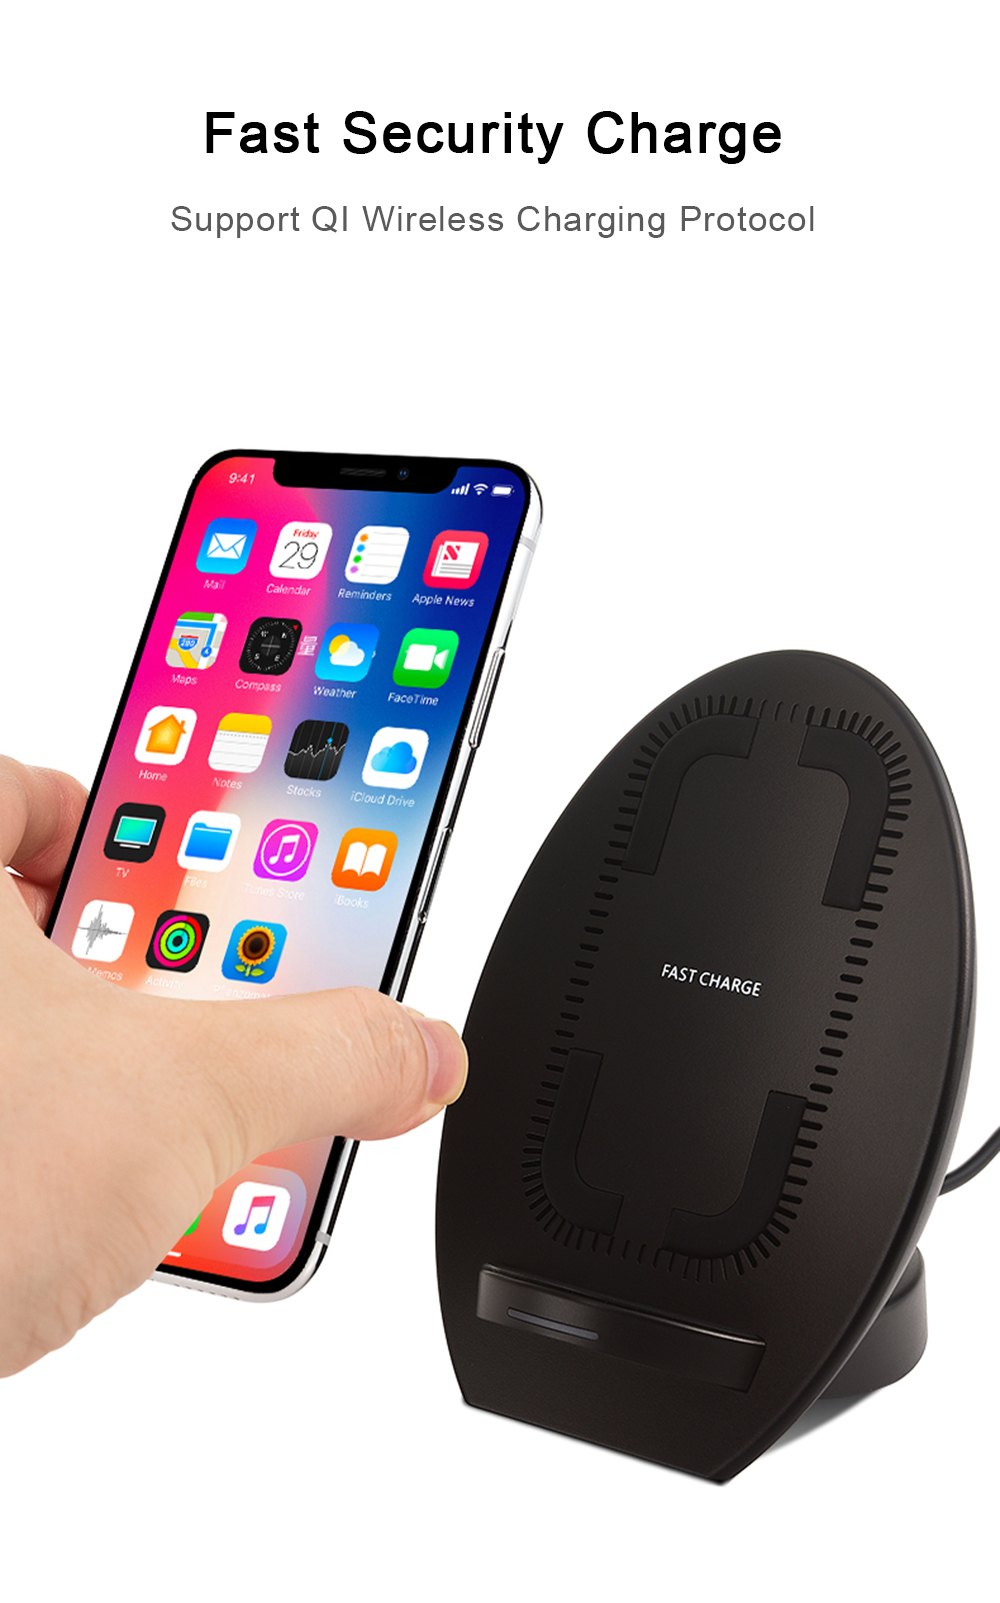 JK68-Qi-Wireless-Charger-Station-For-iPhone-X-8-Plus-Samsung-Note-8-S8-Plus-S7-Edge-Wireless-Quick-Charging-Dock-Stand-Charger- (3)